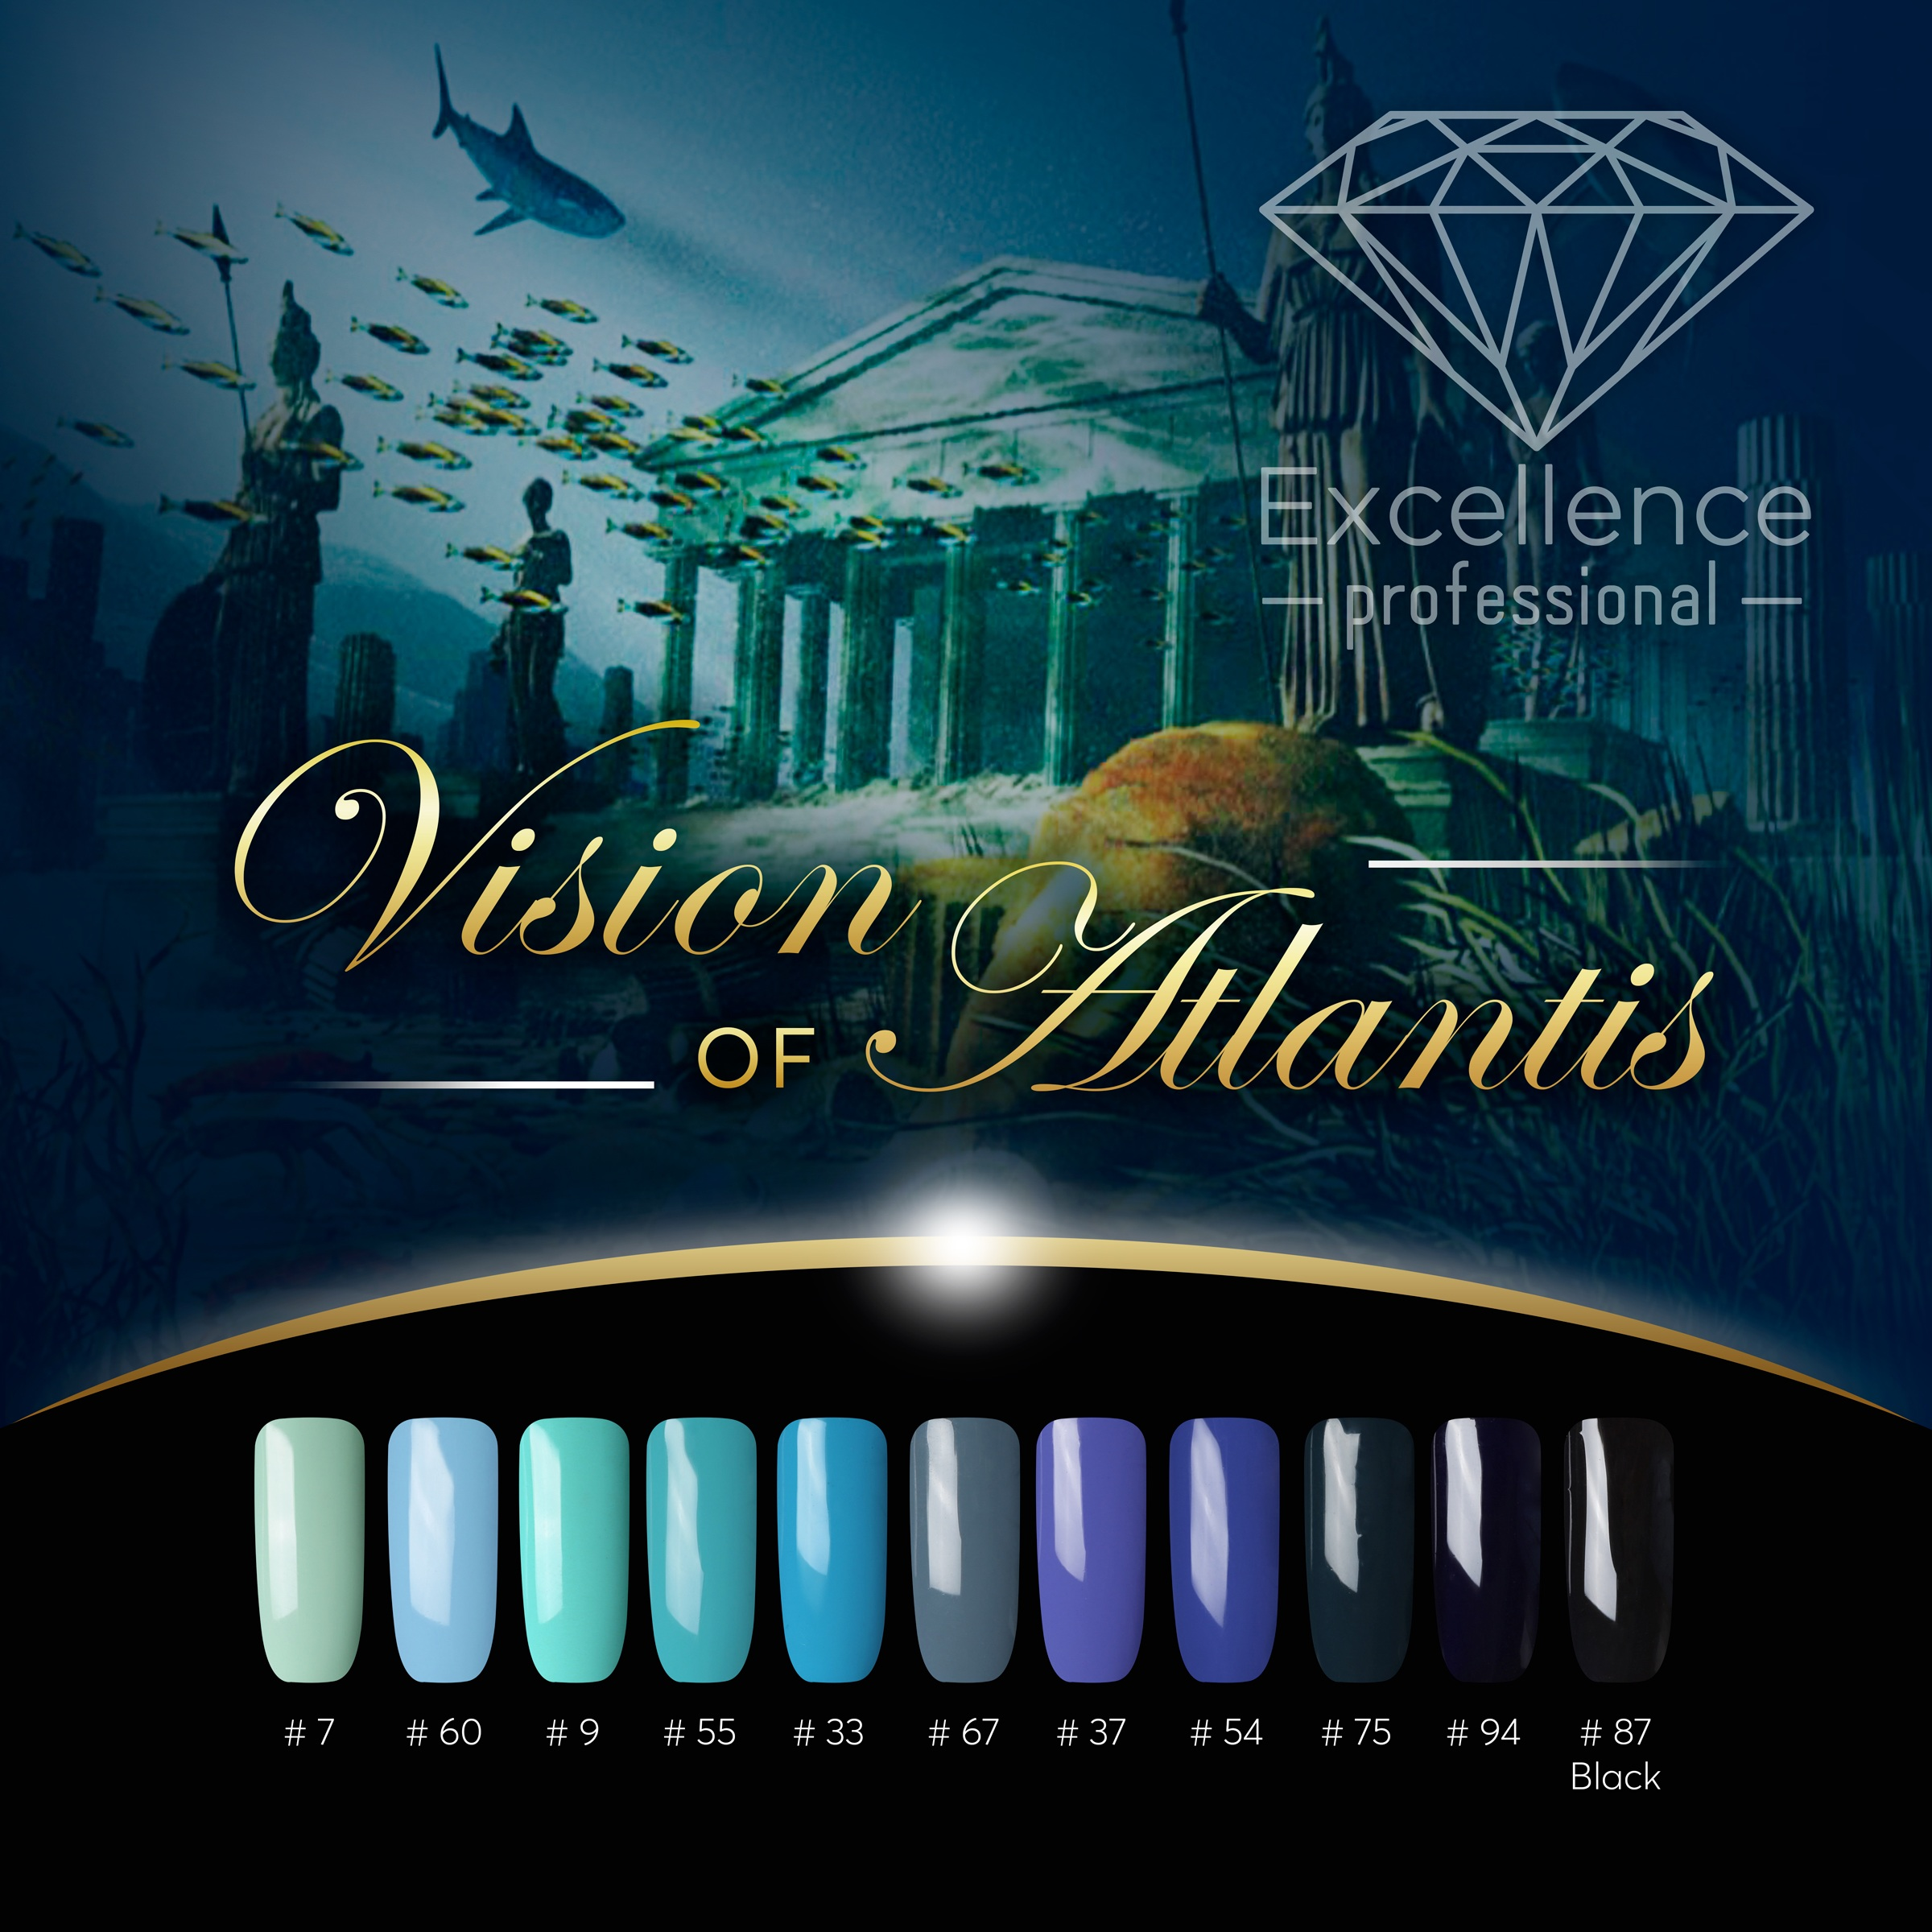 Vision-of-Atlantis_3